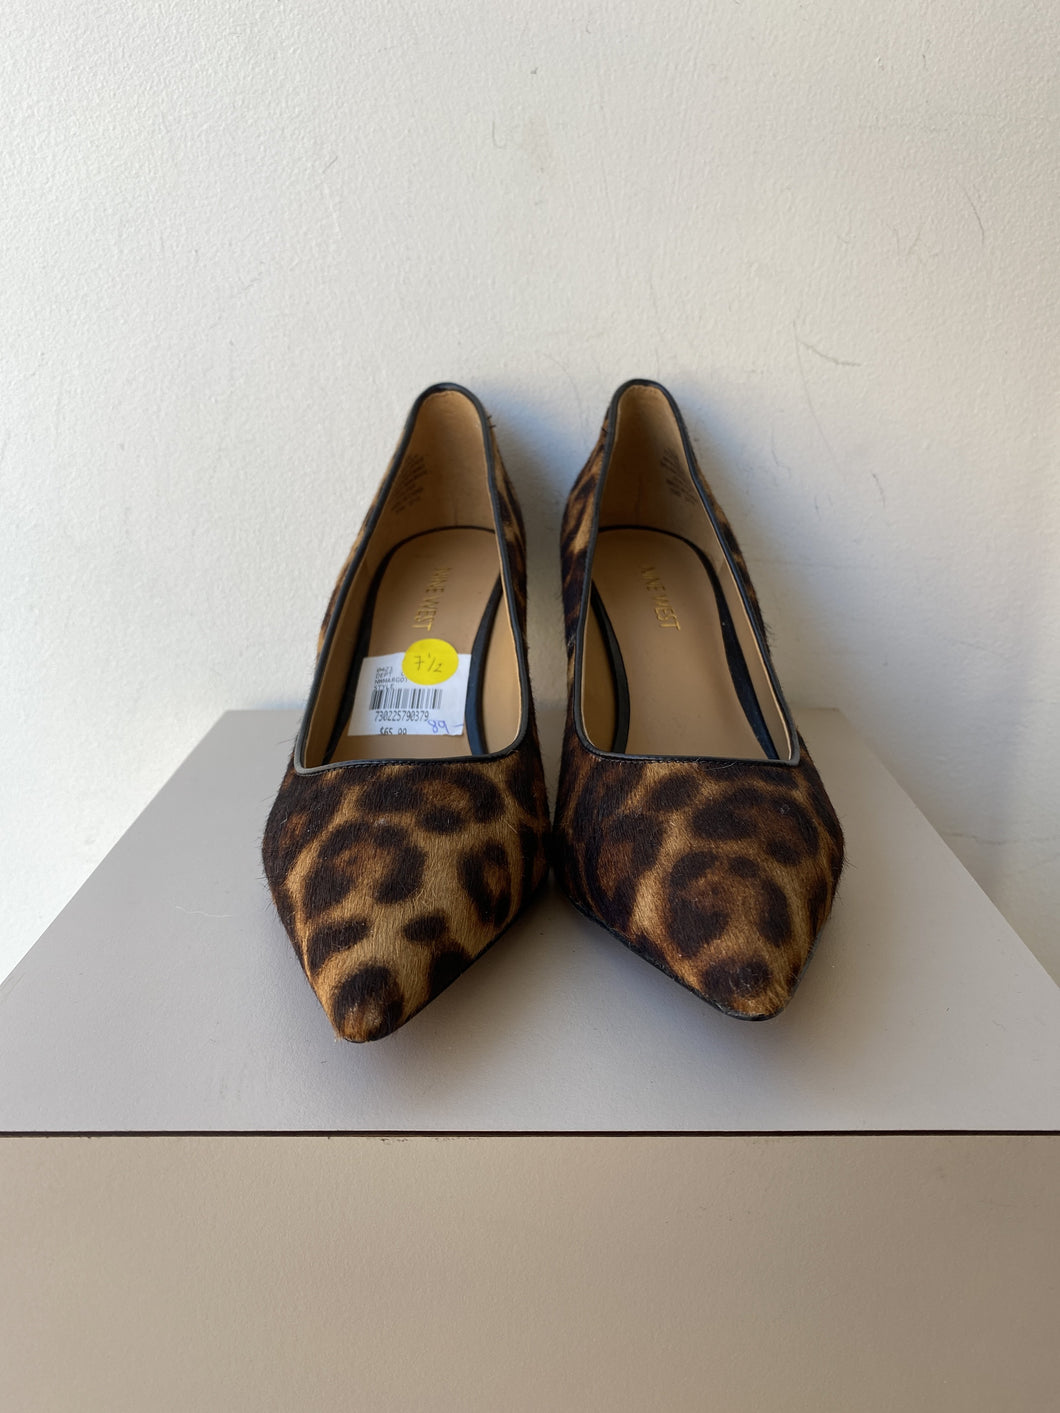 Nine West leopard print pointed pumps size 7.5 NEW - My Girlfriend's Wardrobe York Pa